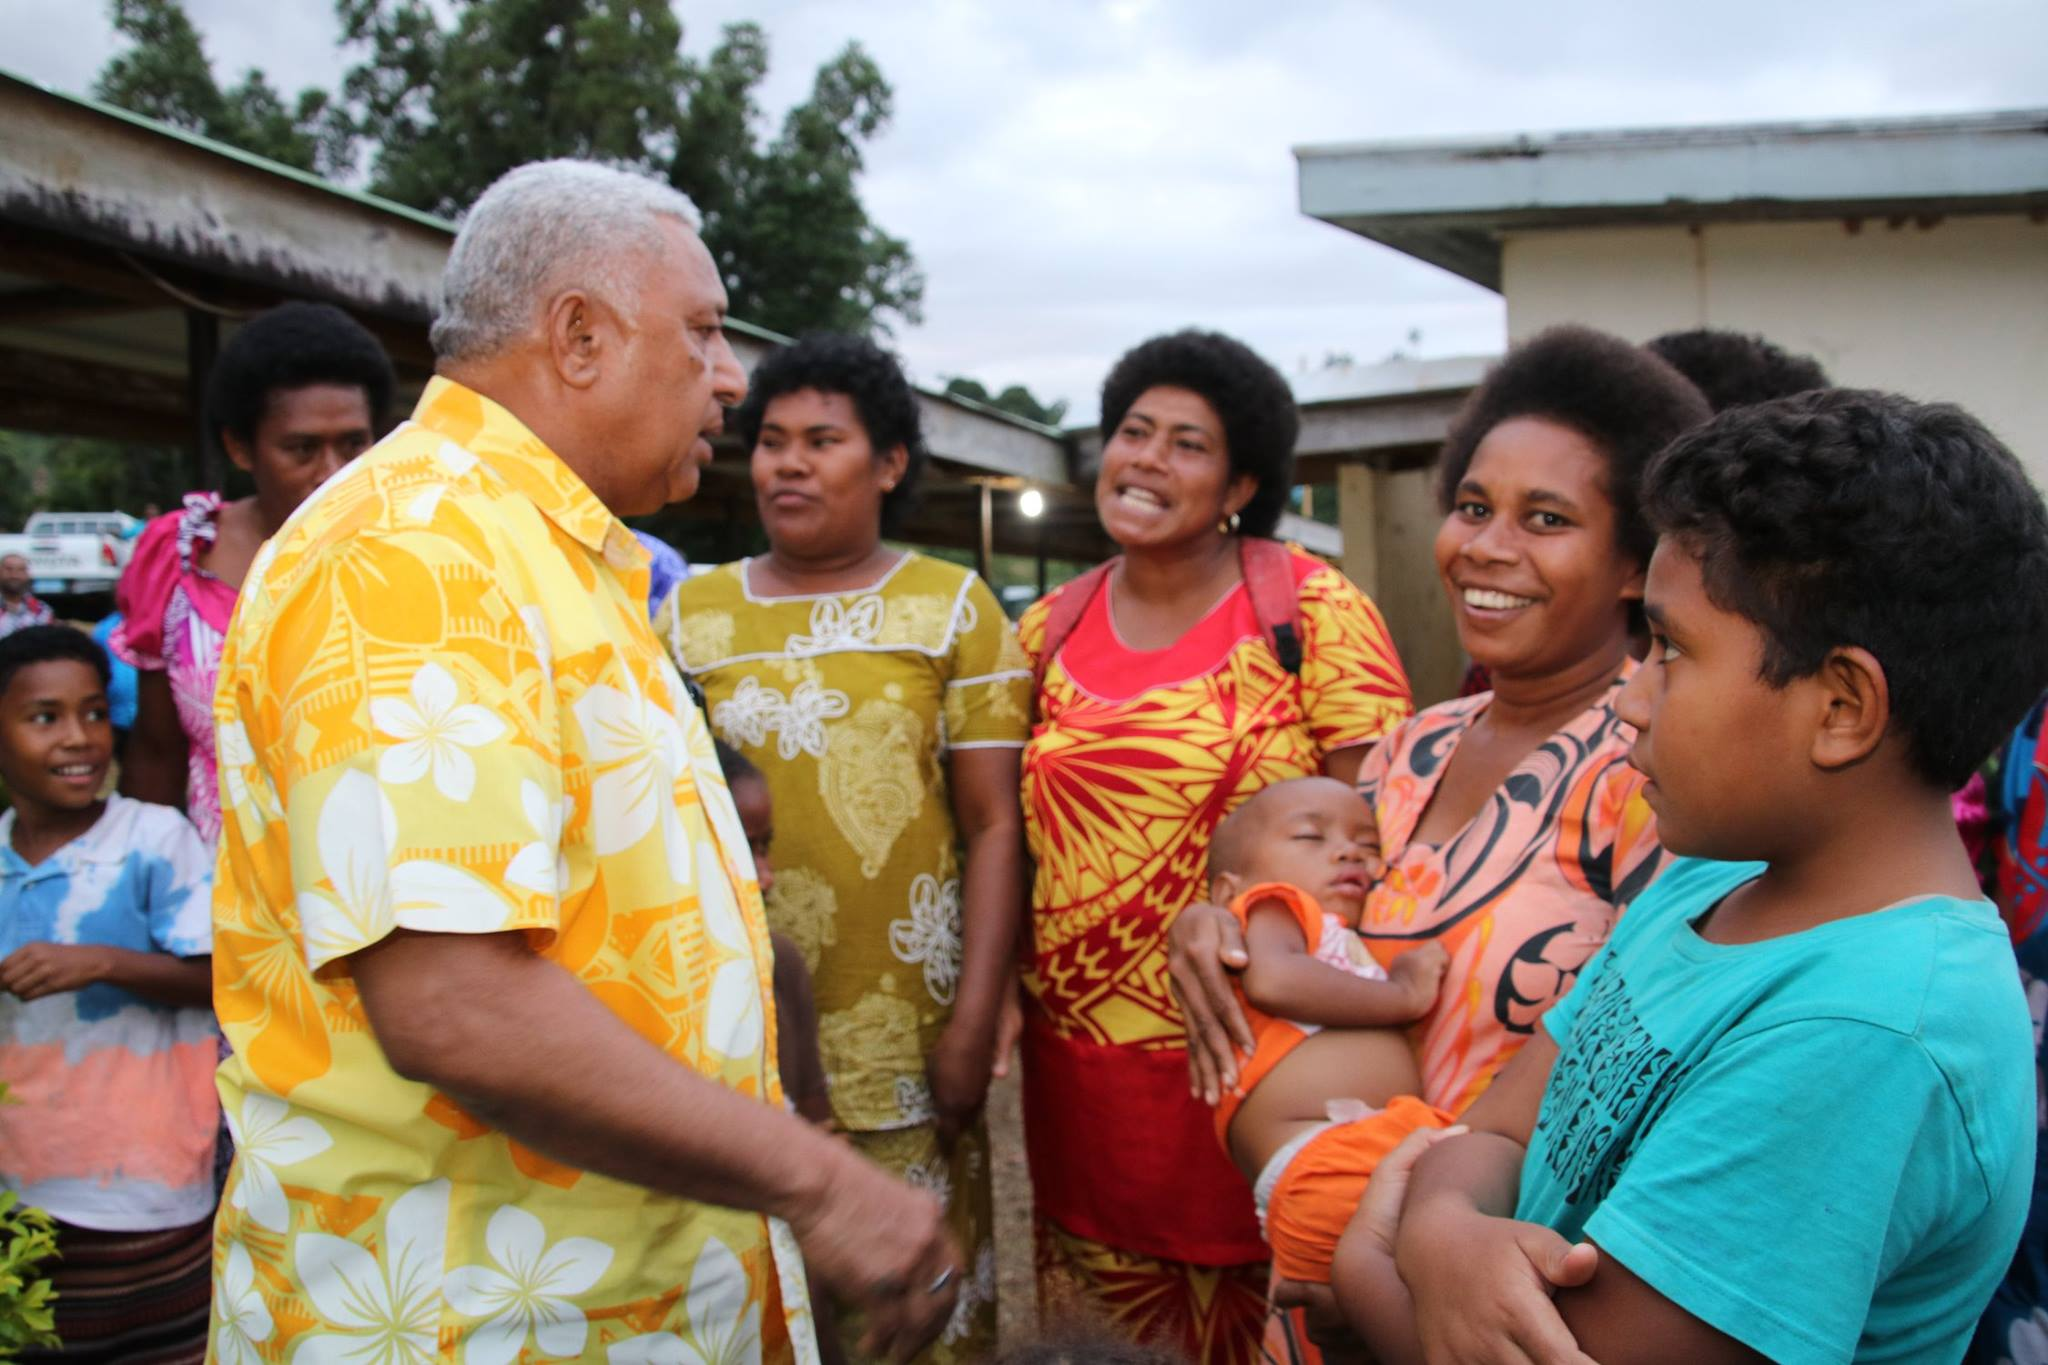 Prime Minister Voreqe Bainimarama with women of Vaturova and Koroalau in Cakaudrove during his visit on July 4, 2018. Photo: DEPTFO News